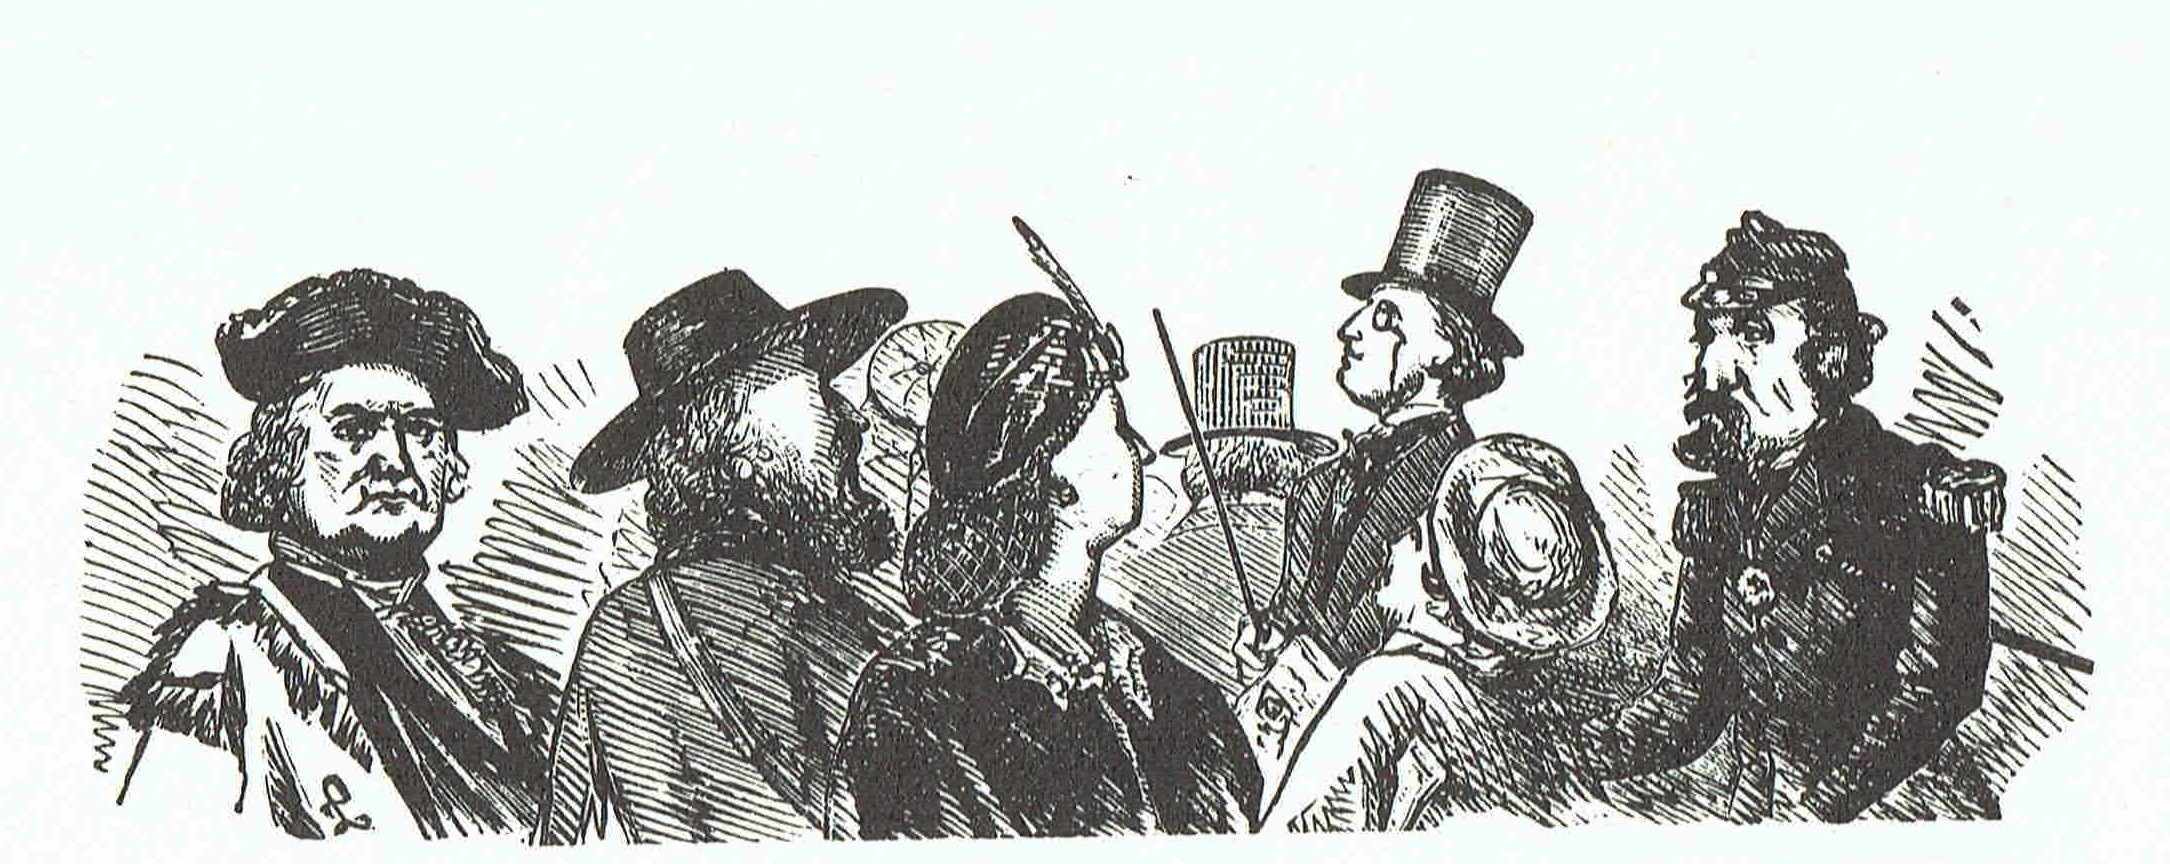 The Promenade  (1860s), artist unknown.  This group illustration shows Emperor Norton on the right. The appearance of Frederick Coombs, the self-styled George Washington II, on the left points to an 1860s date for the work, as Coombs was active in San Francisco for much of that decade but had left and was in New York City by 1868. Source:  The Forgotten Characters of Old San Francisco  (The Ward Richie Press, 1964); credited there as being from the collection of Robert G. Cowan (1895-1993).